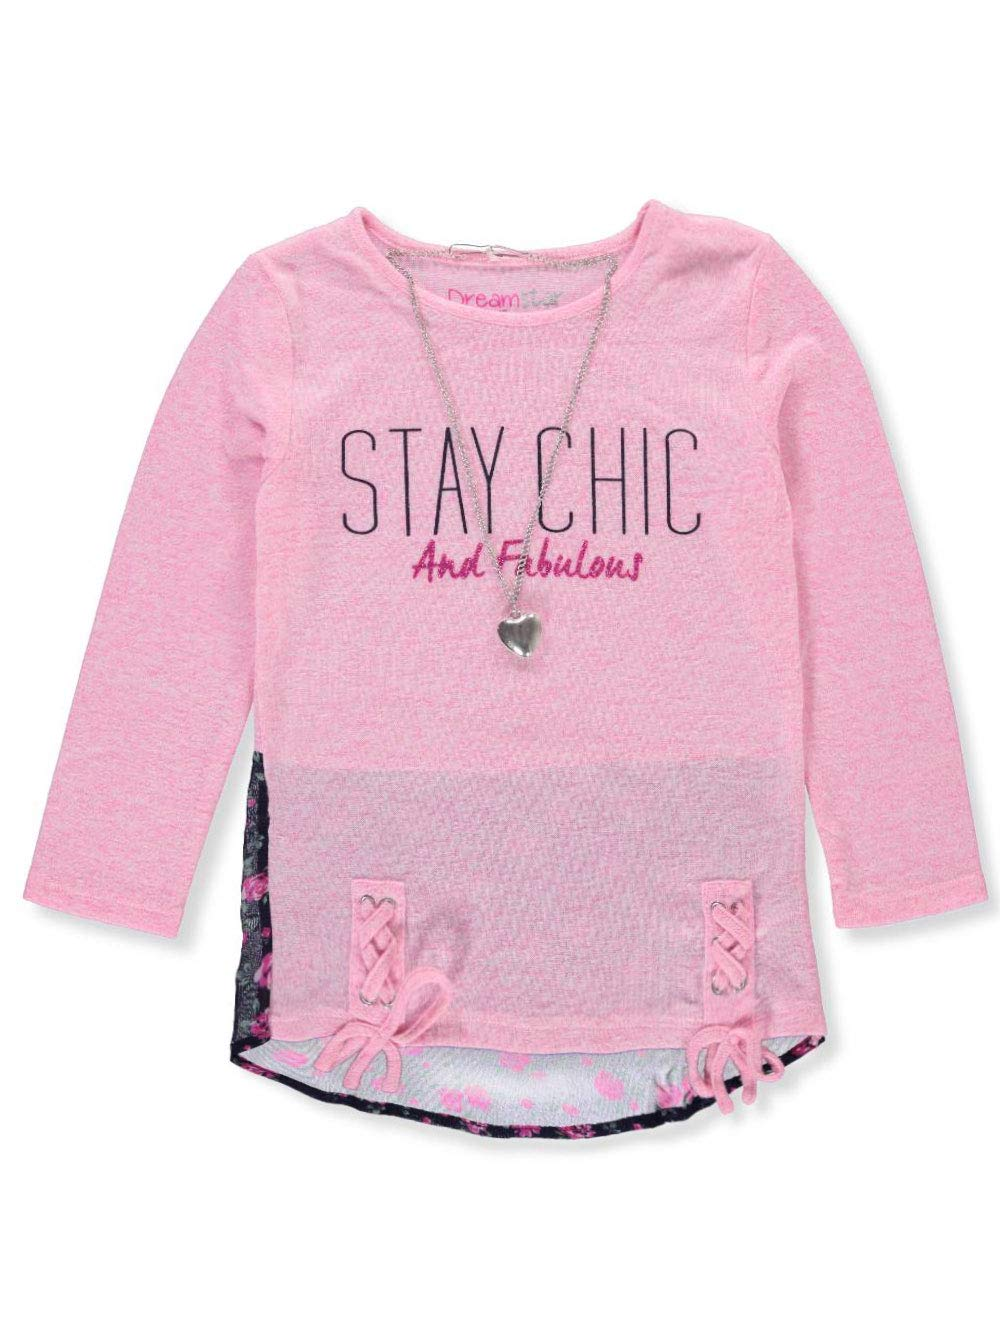 Dream Star Girls' L/S Top with Necklace